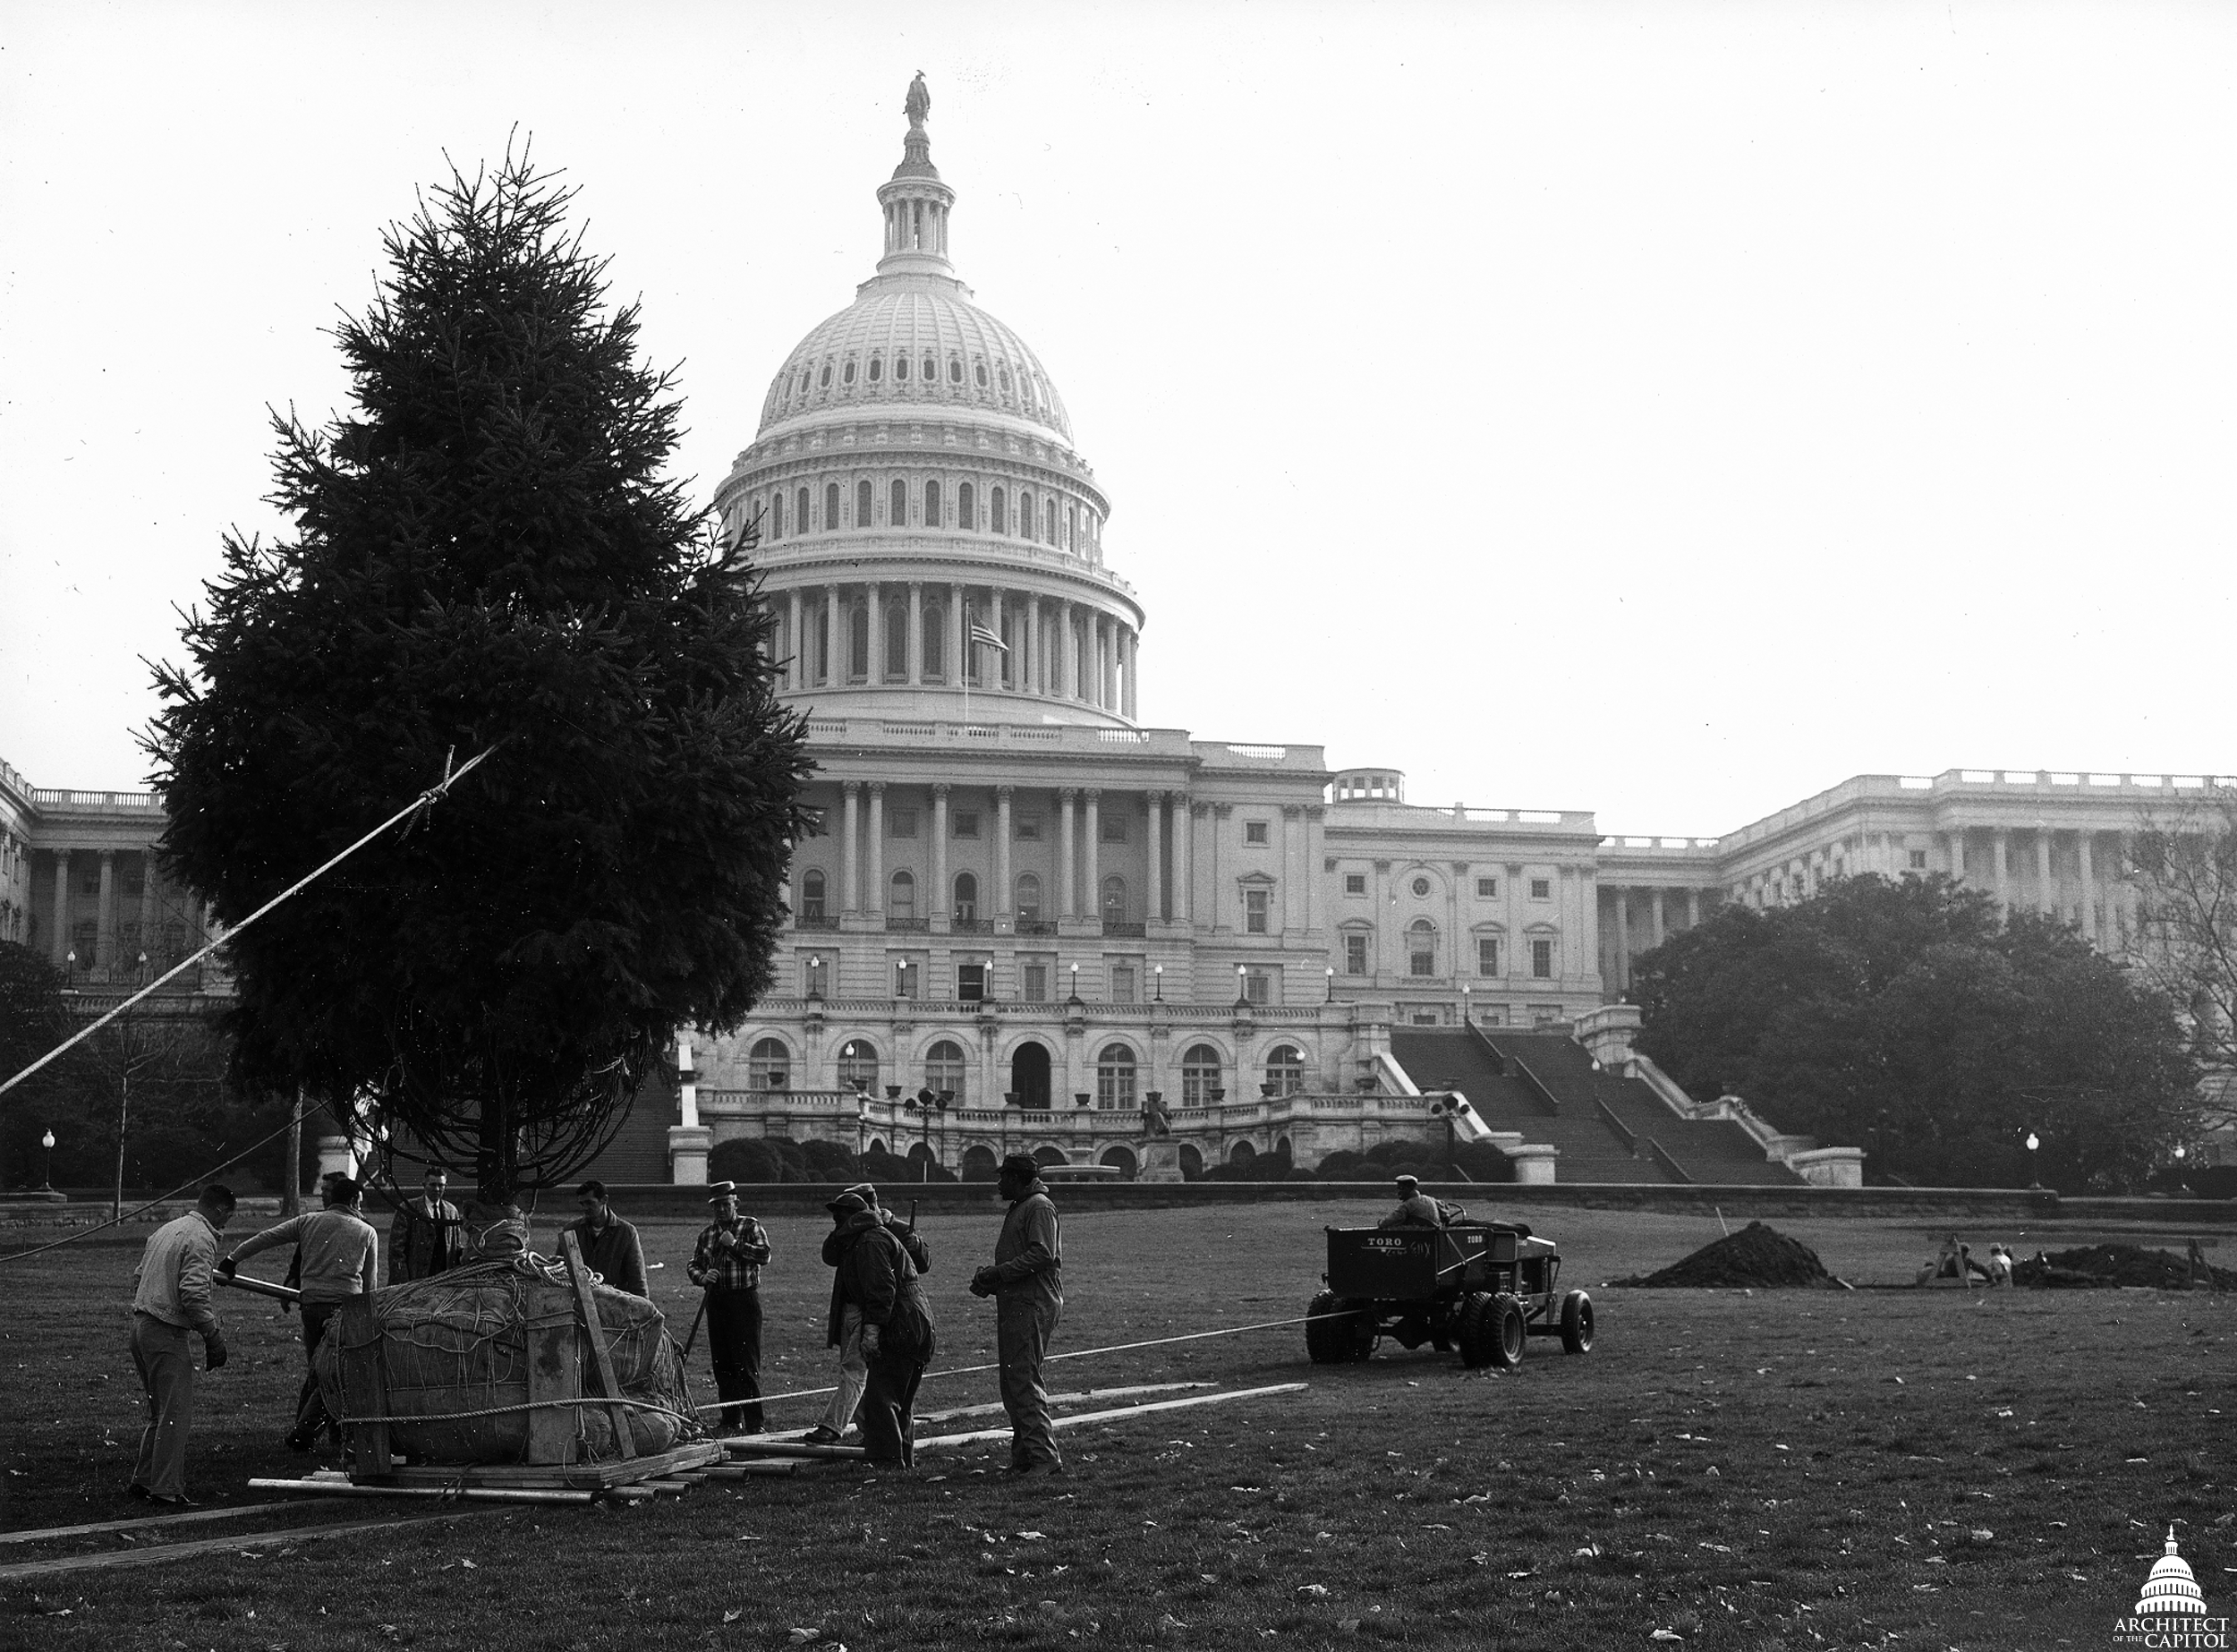 Capitol Christmas Tree Architect Of The Capitol United